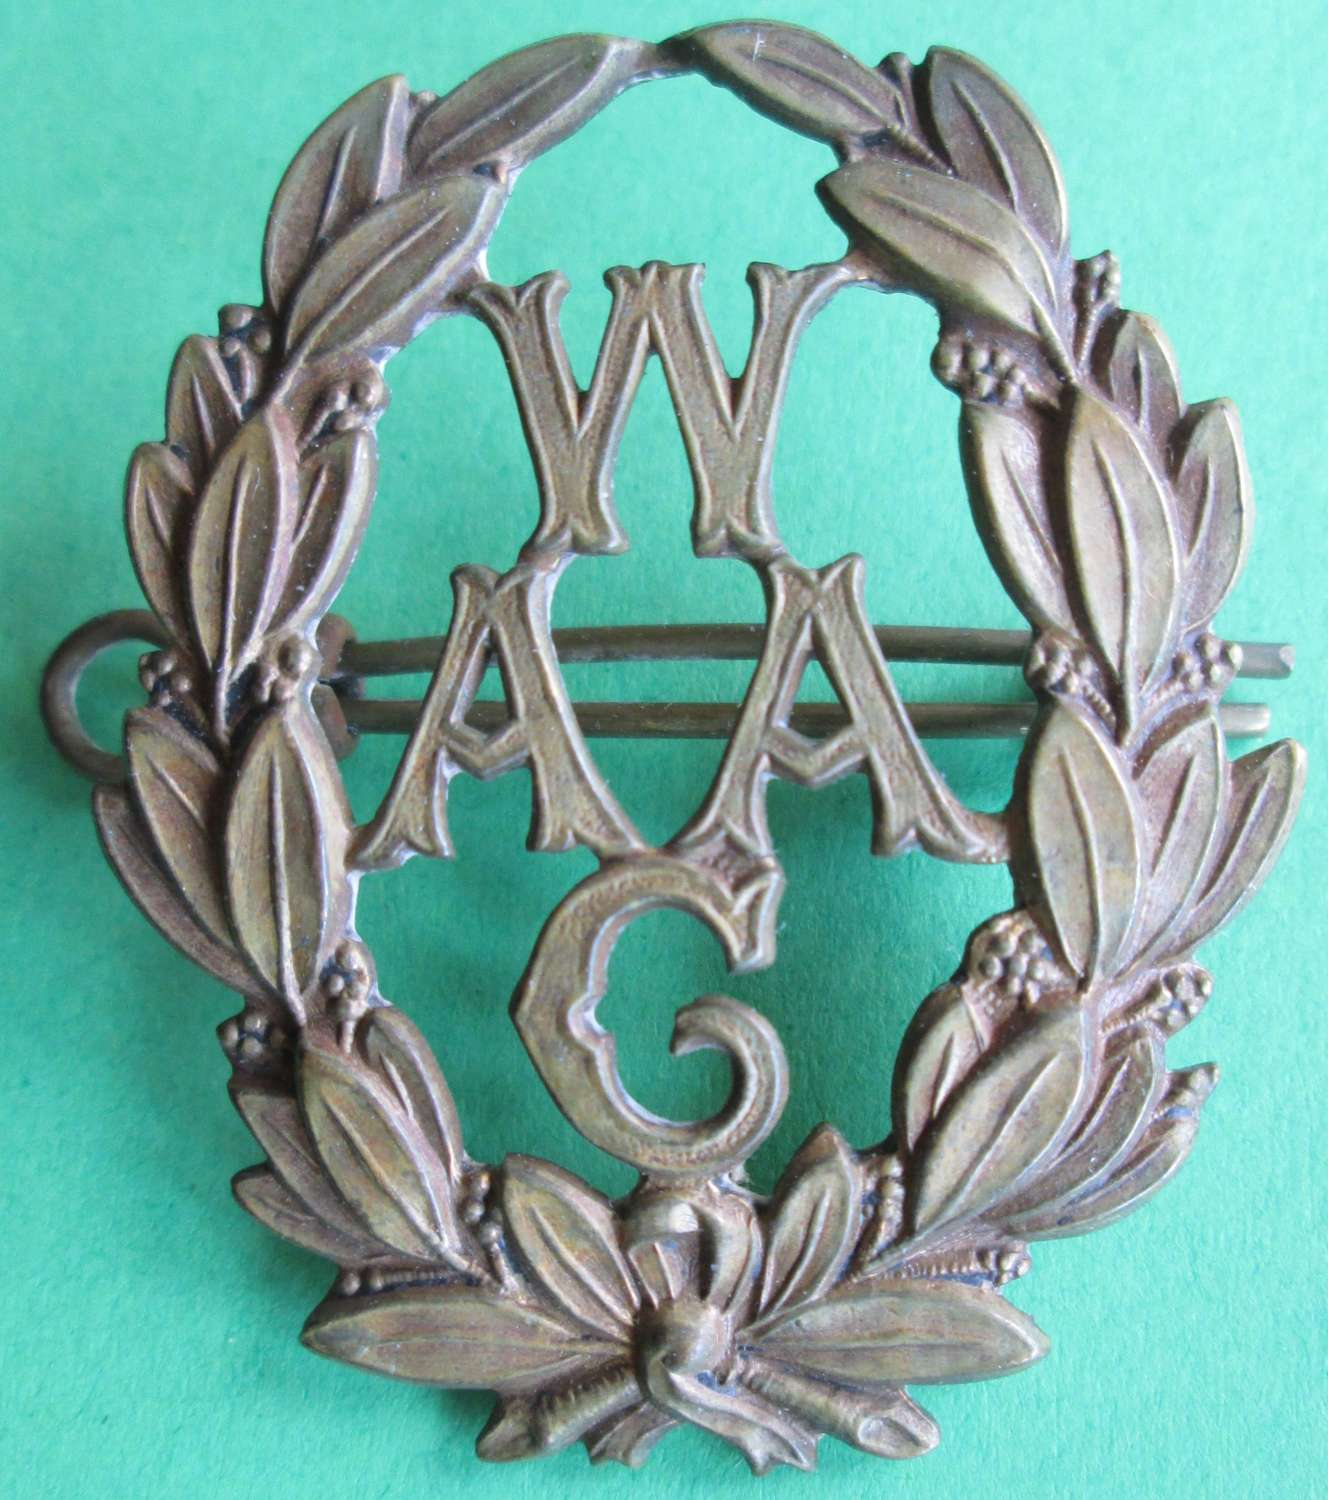 A FIRST WORLD WAR WOMEN'S ARMY AUXILIARY CORPS BADGE